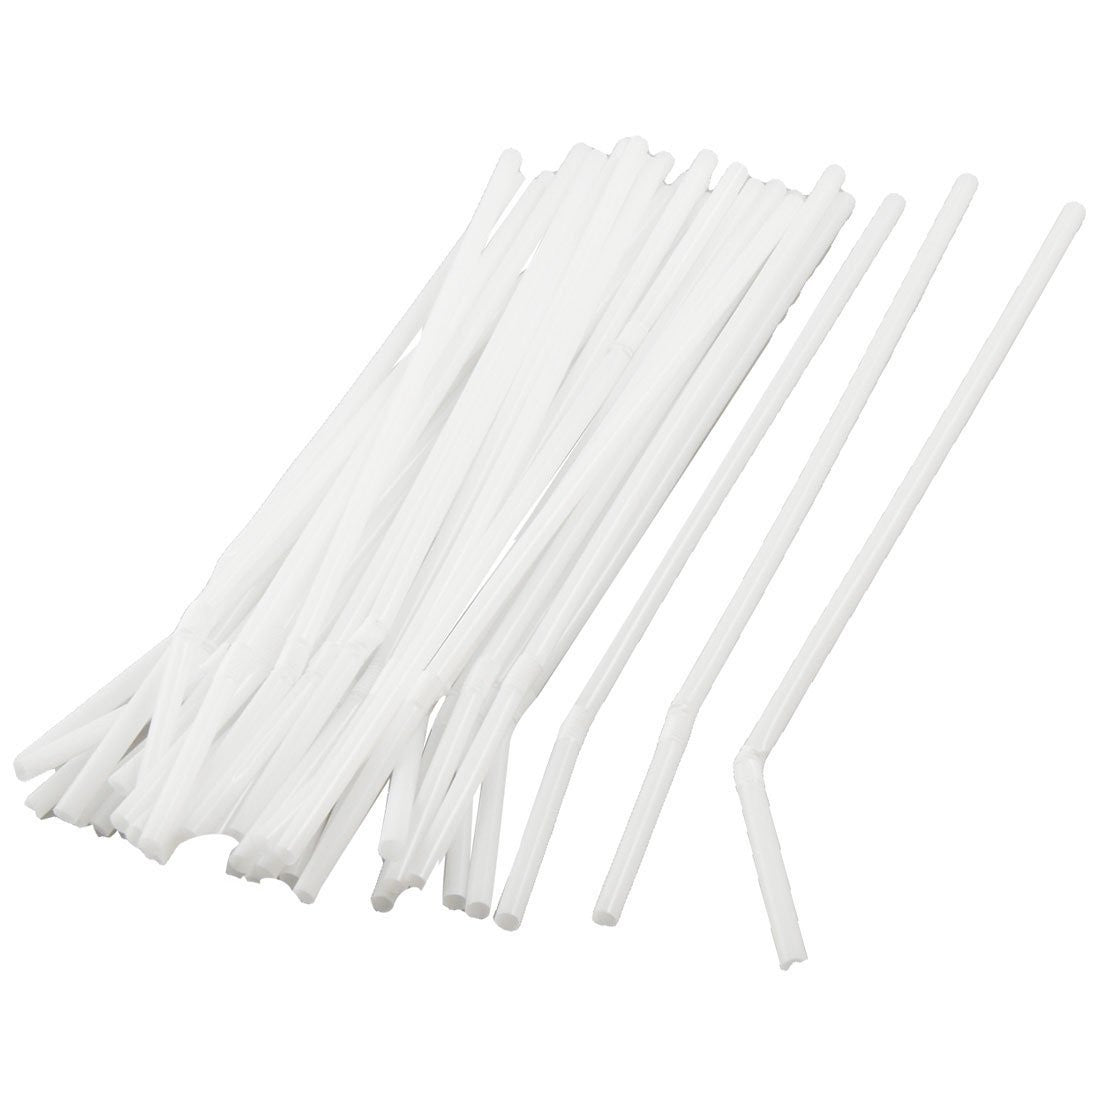 Buy Flexible White Disposable Drinking Straws, Bulk Box of 400 by Dynarex from a SDVOSB | Drinking Straws